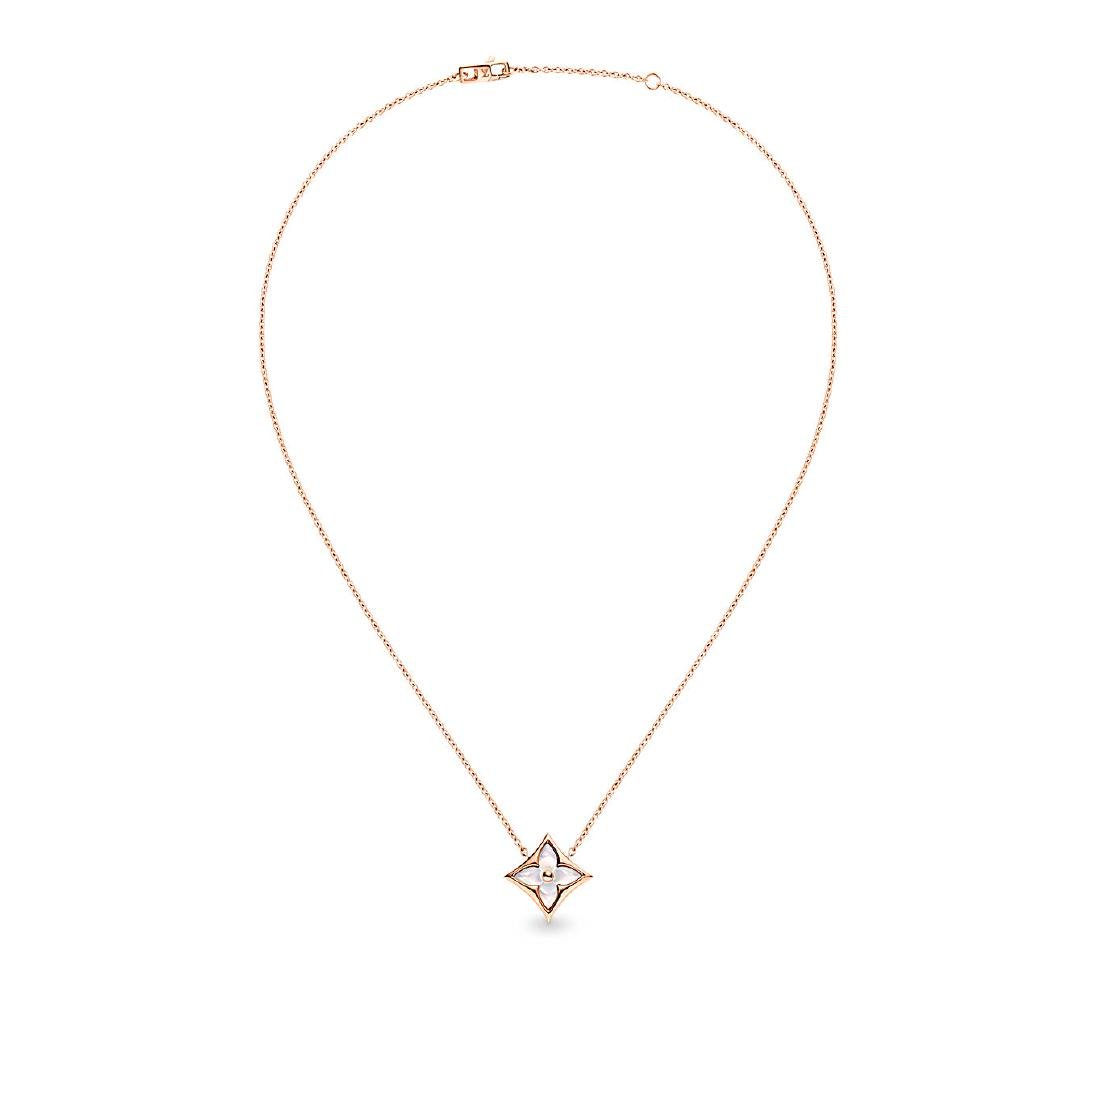 LOUIS VUITTON 18K ROSE GOLD MOTHER OF PEARL PENDANT - 2